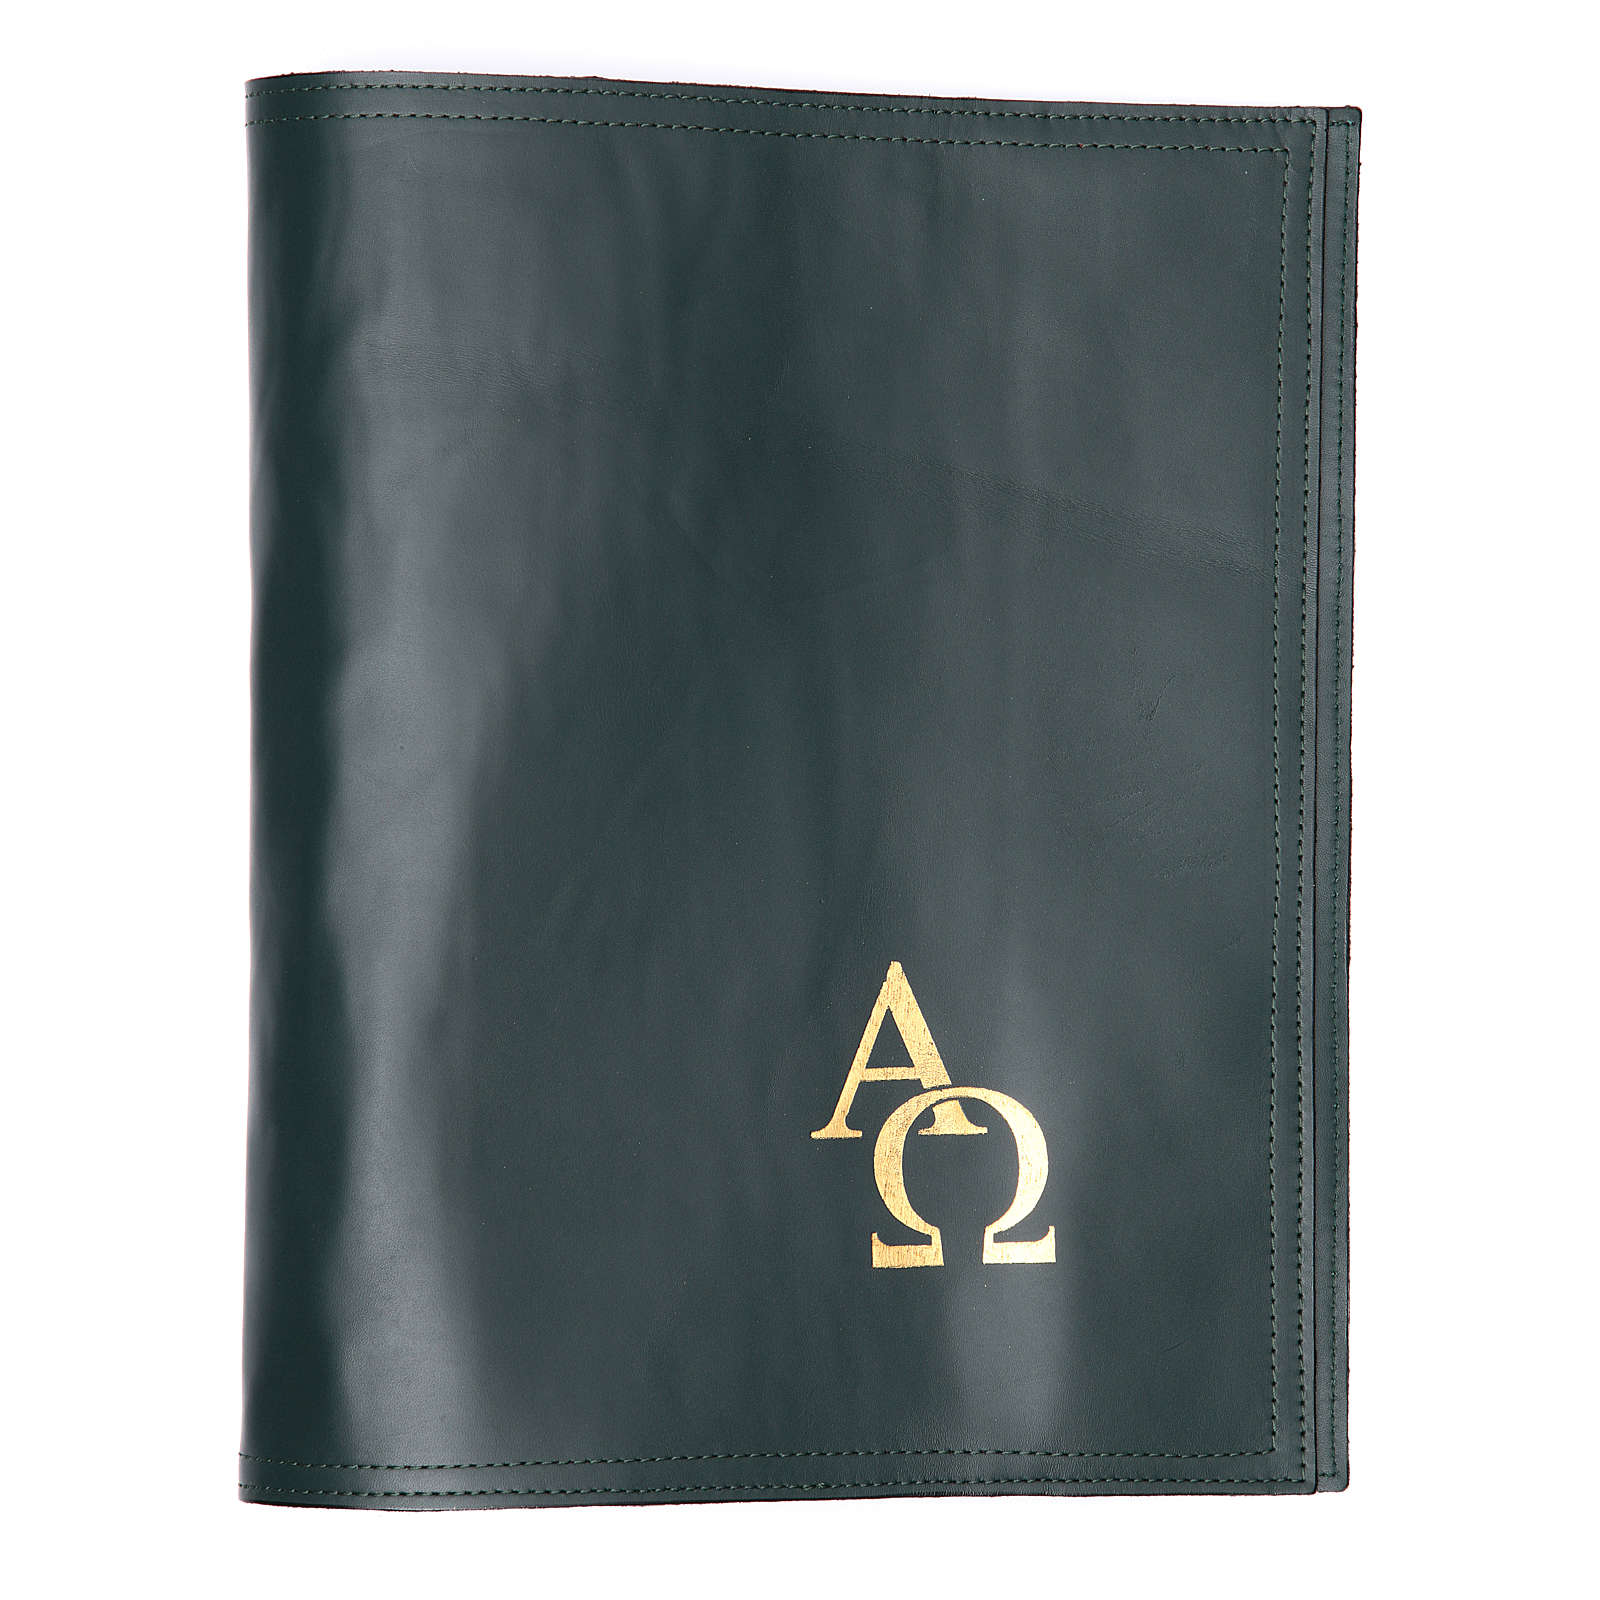 Alpha and Omega Cover for Benedictional in Green Leather 4